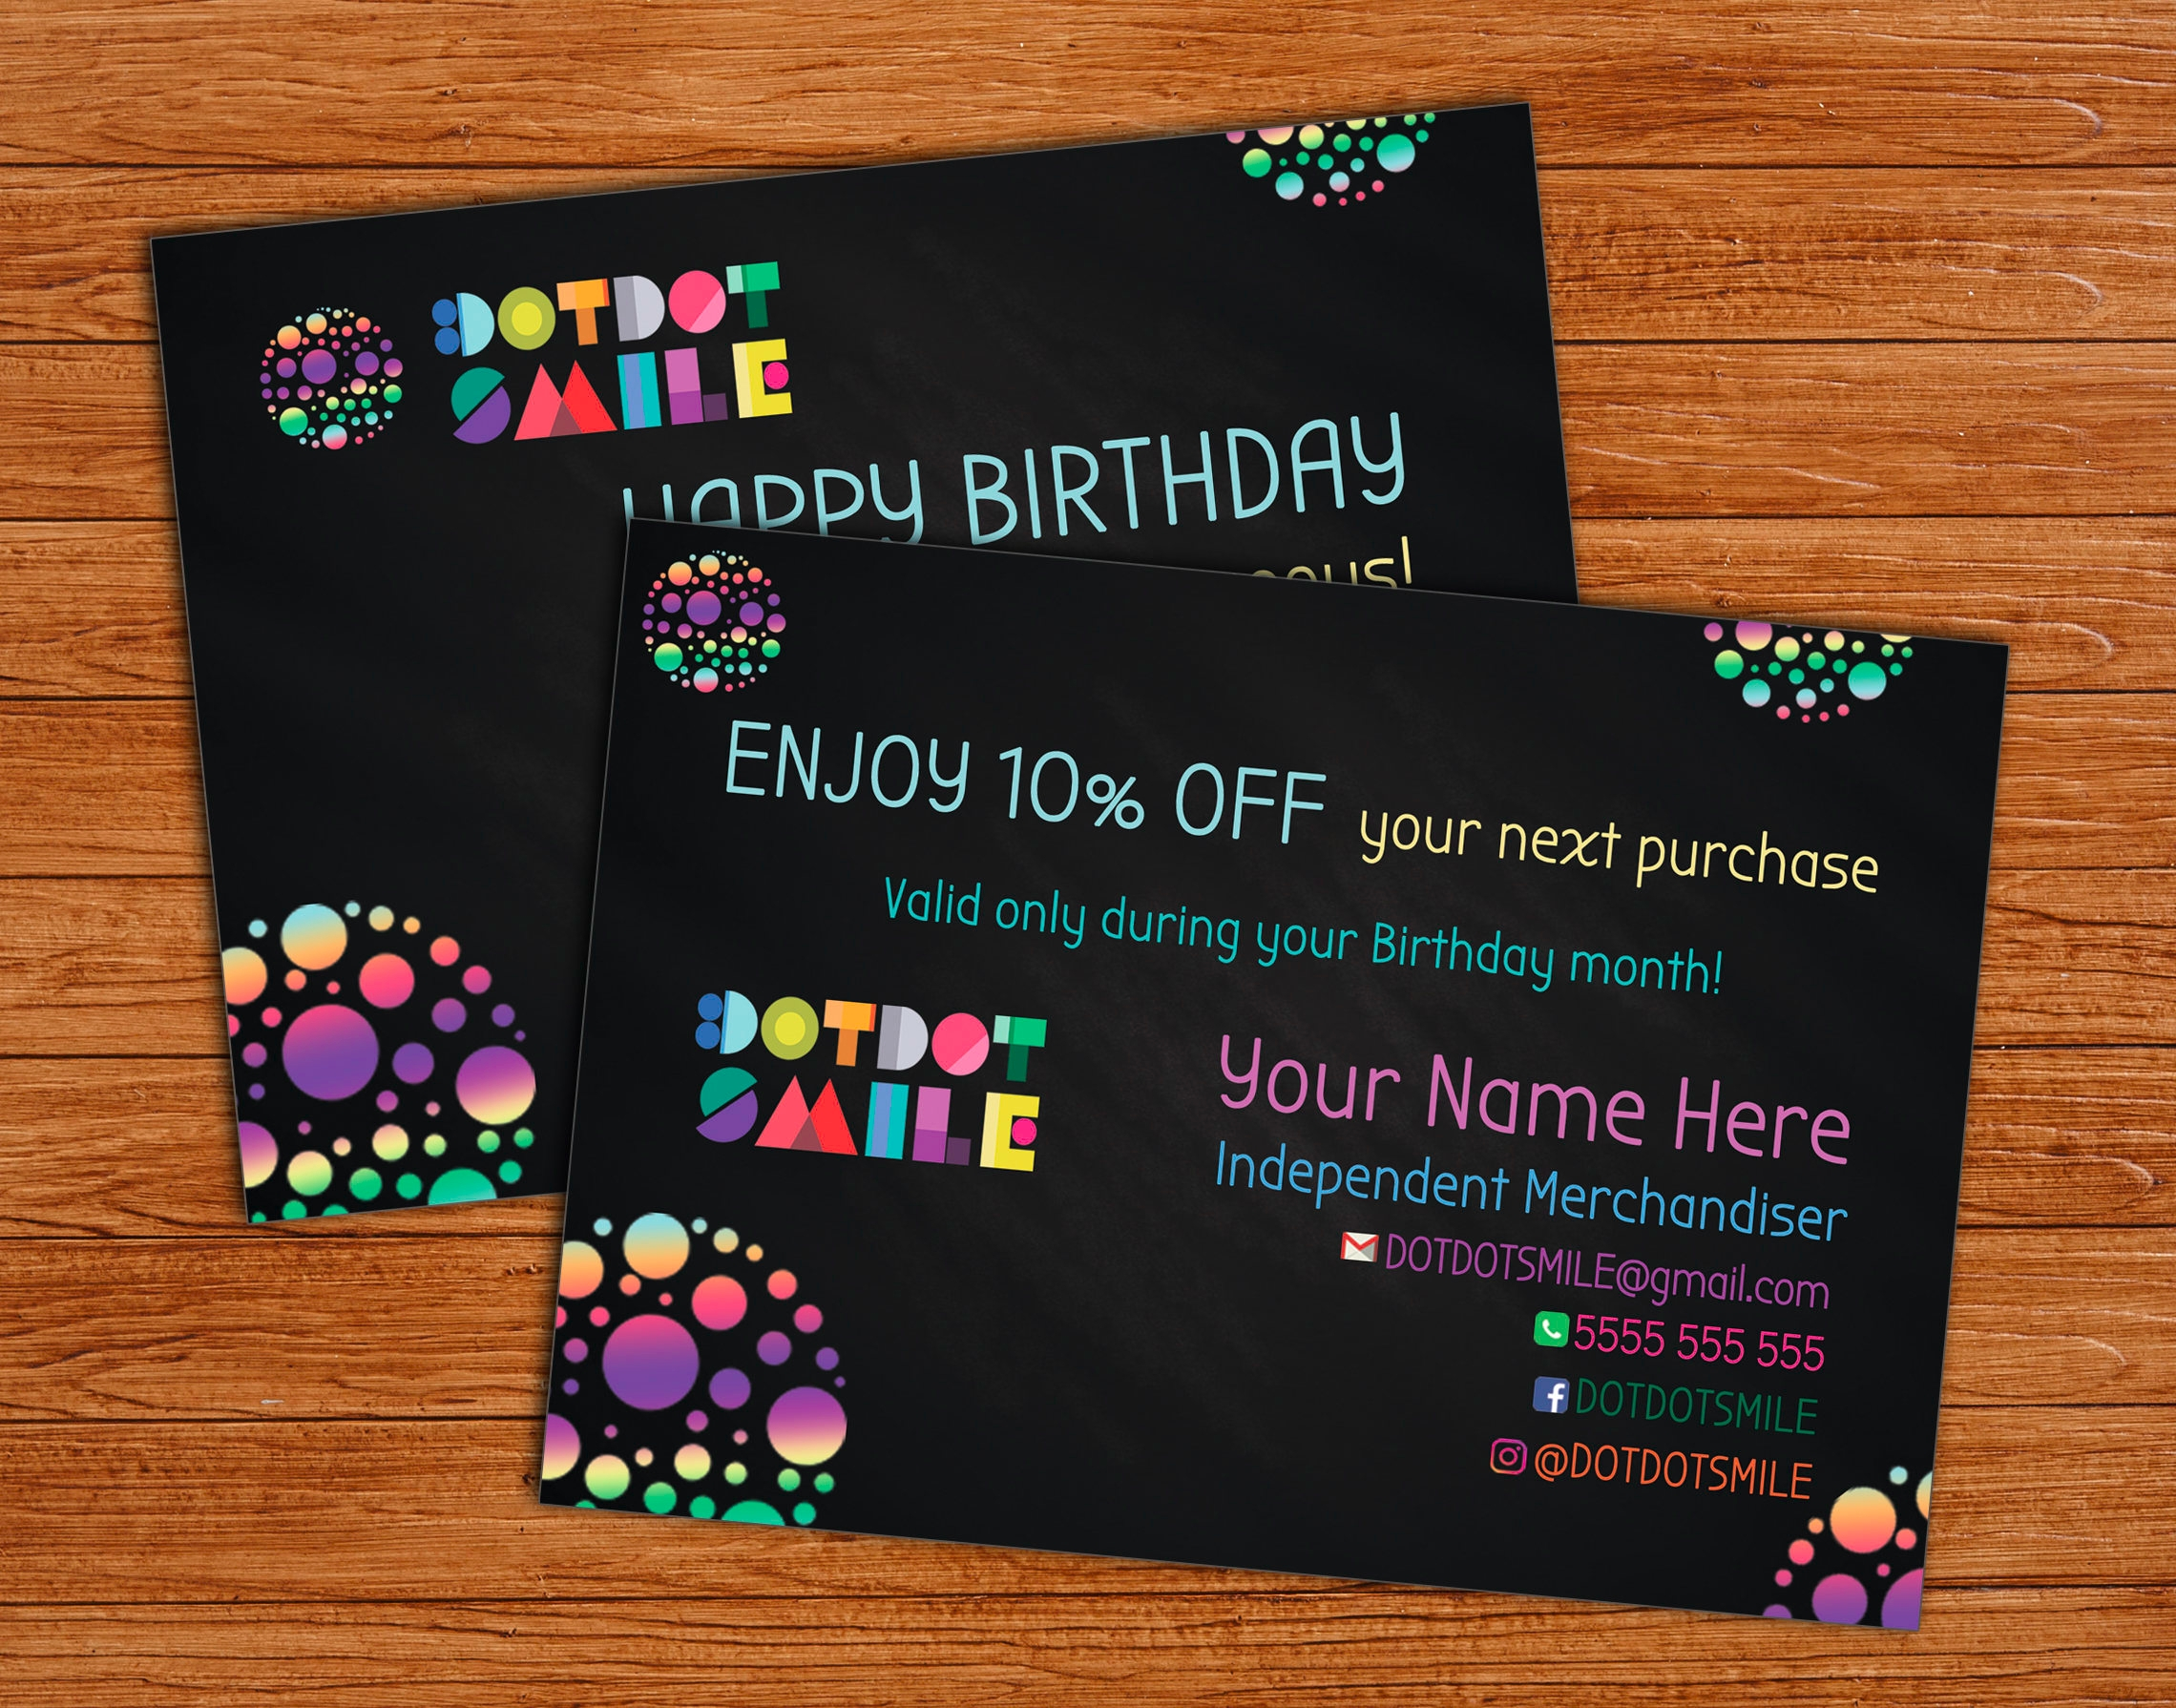 Happy Birthday Greeting Cards with Dots